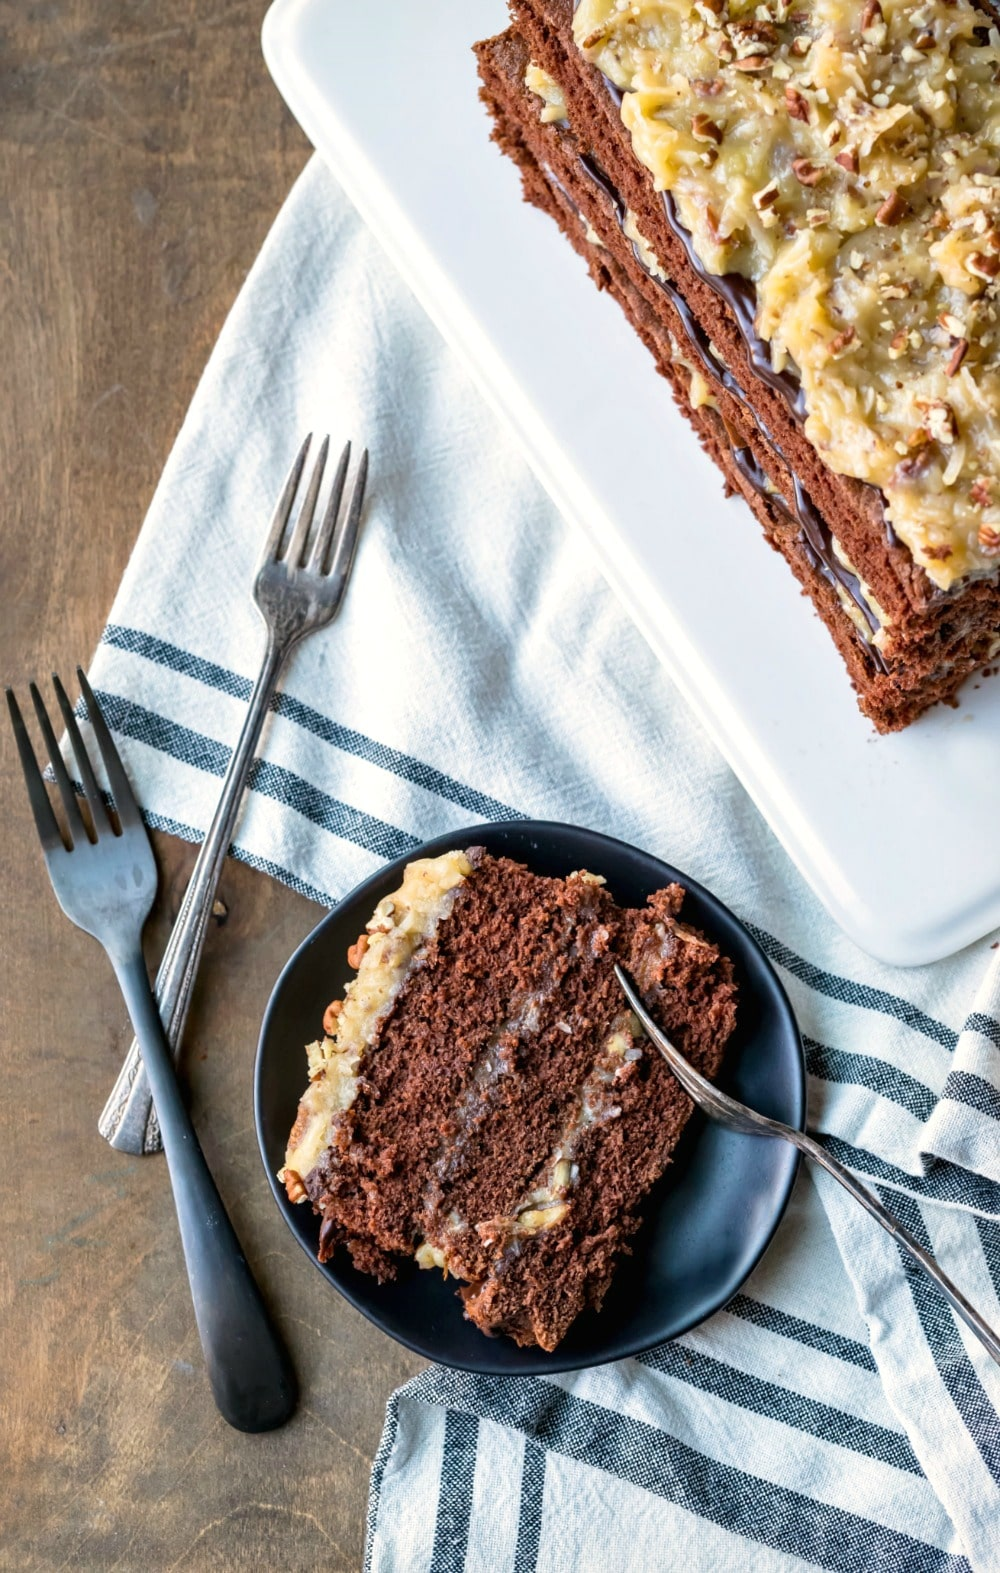 Slice of homemade German chocolate cake